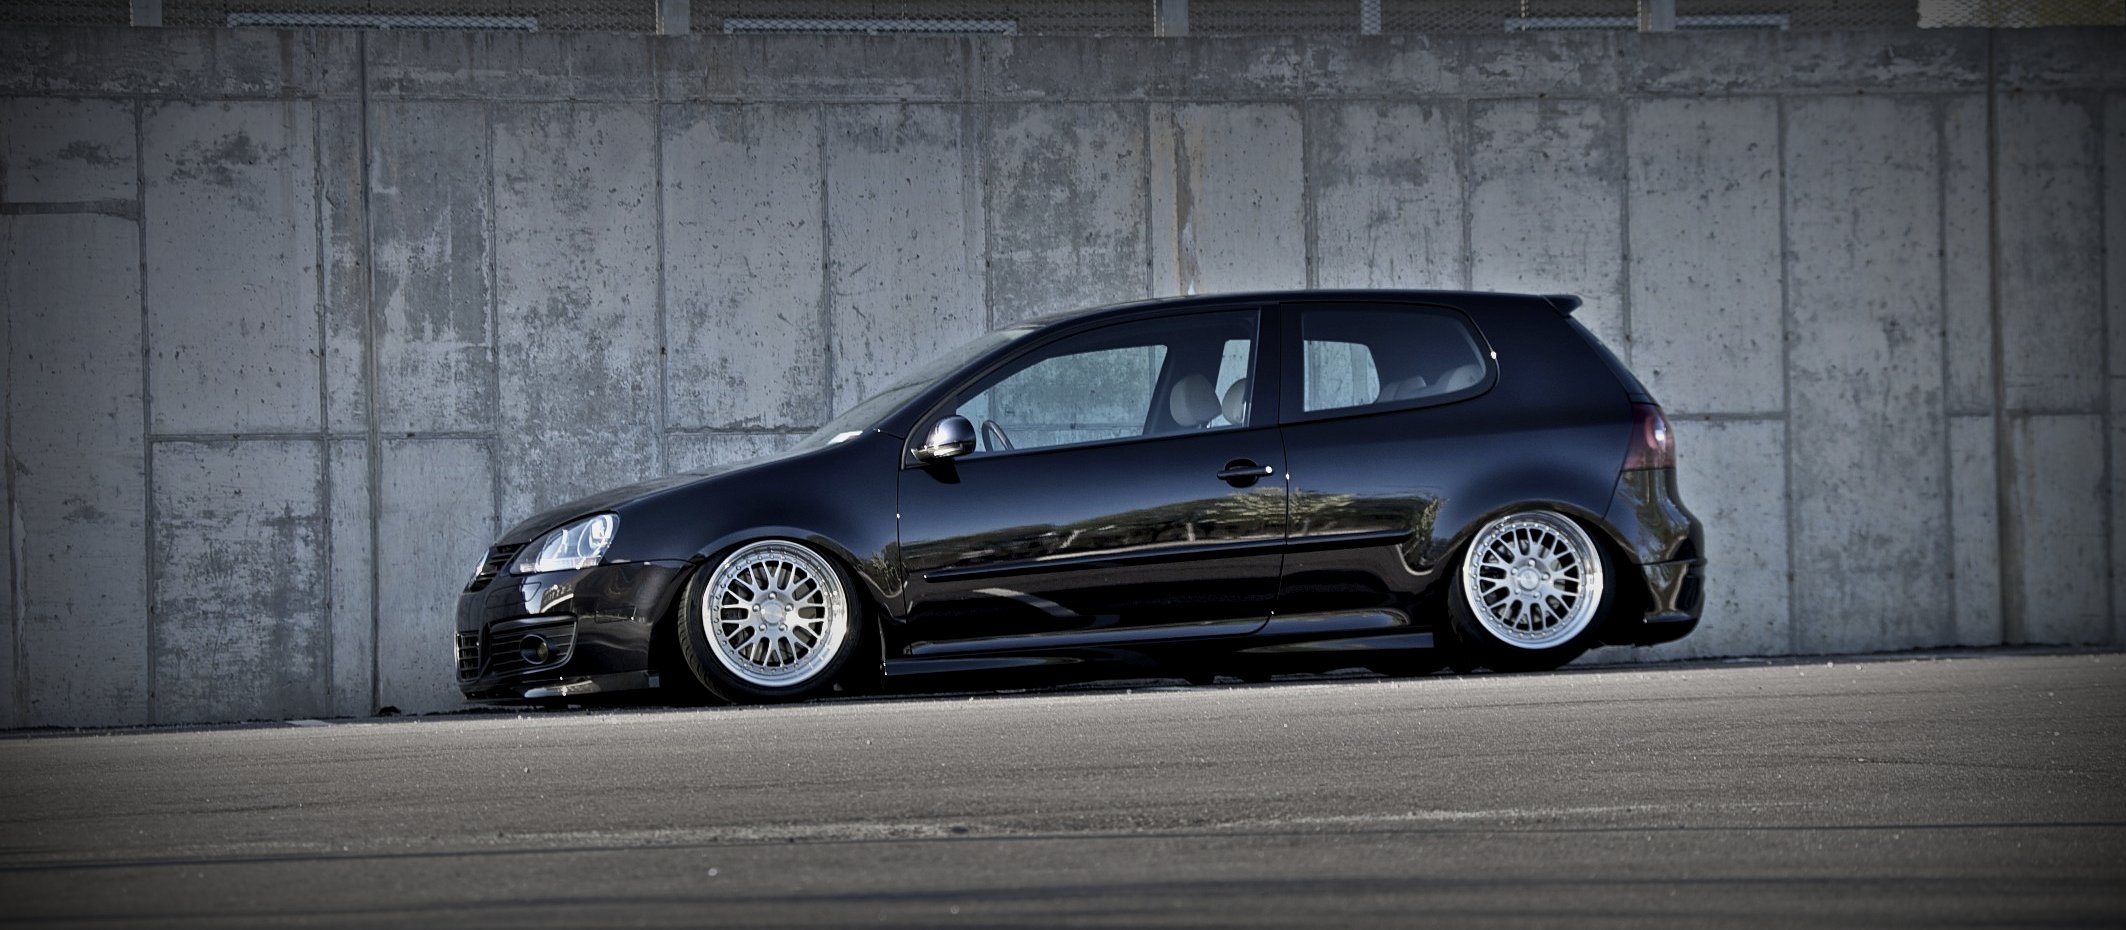 5438; Vehicles: Bagged MK5